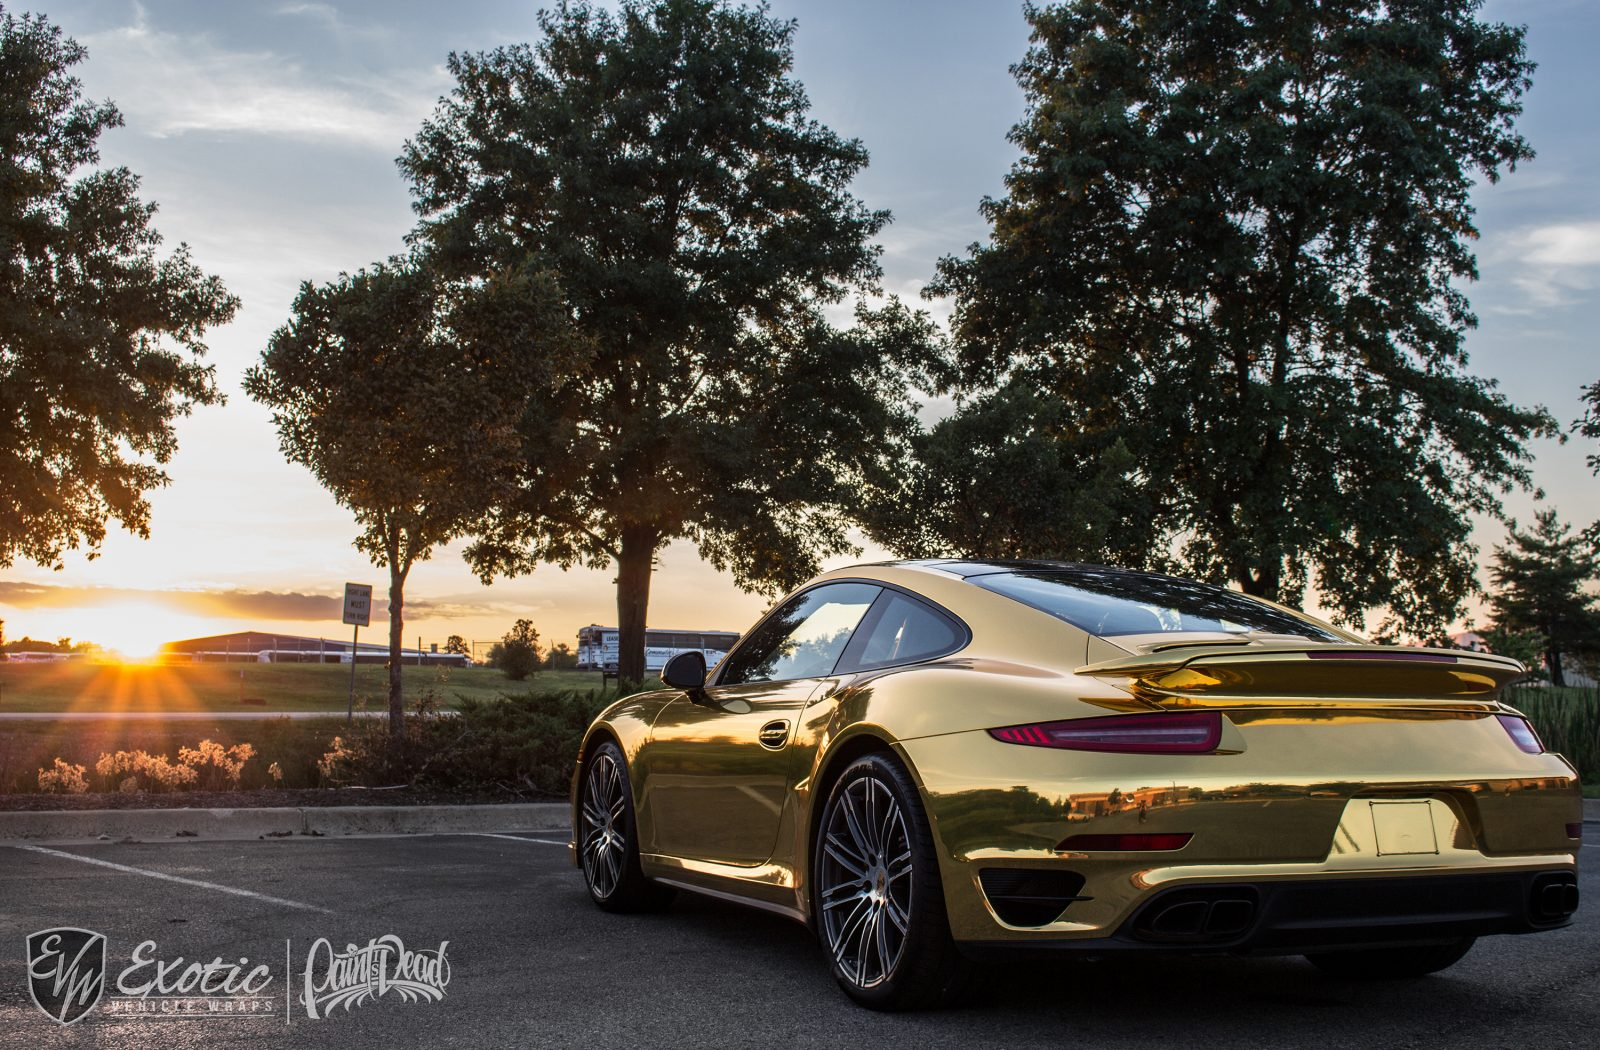 Porsche Turbo S Gold